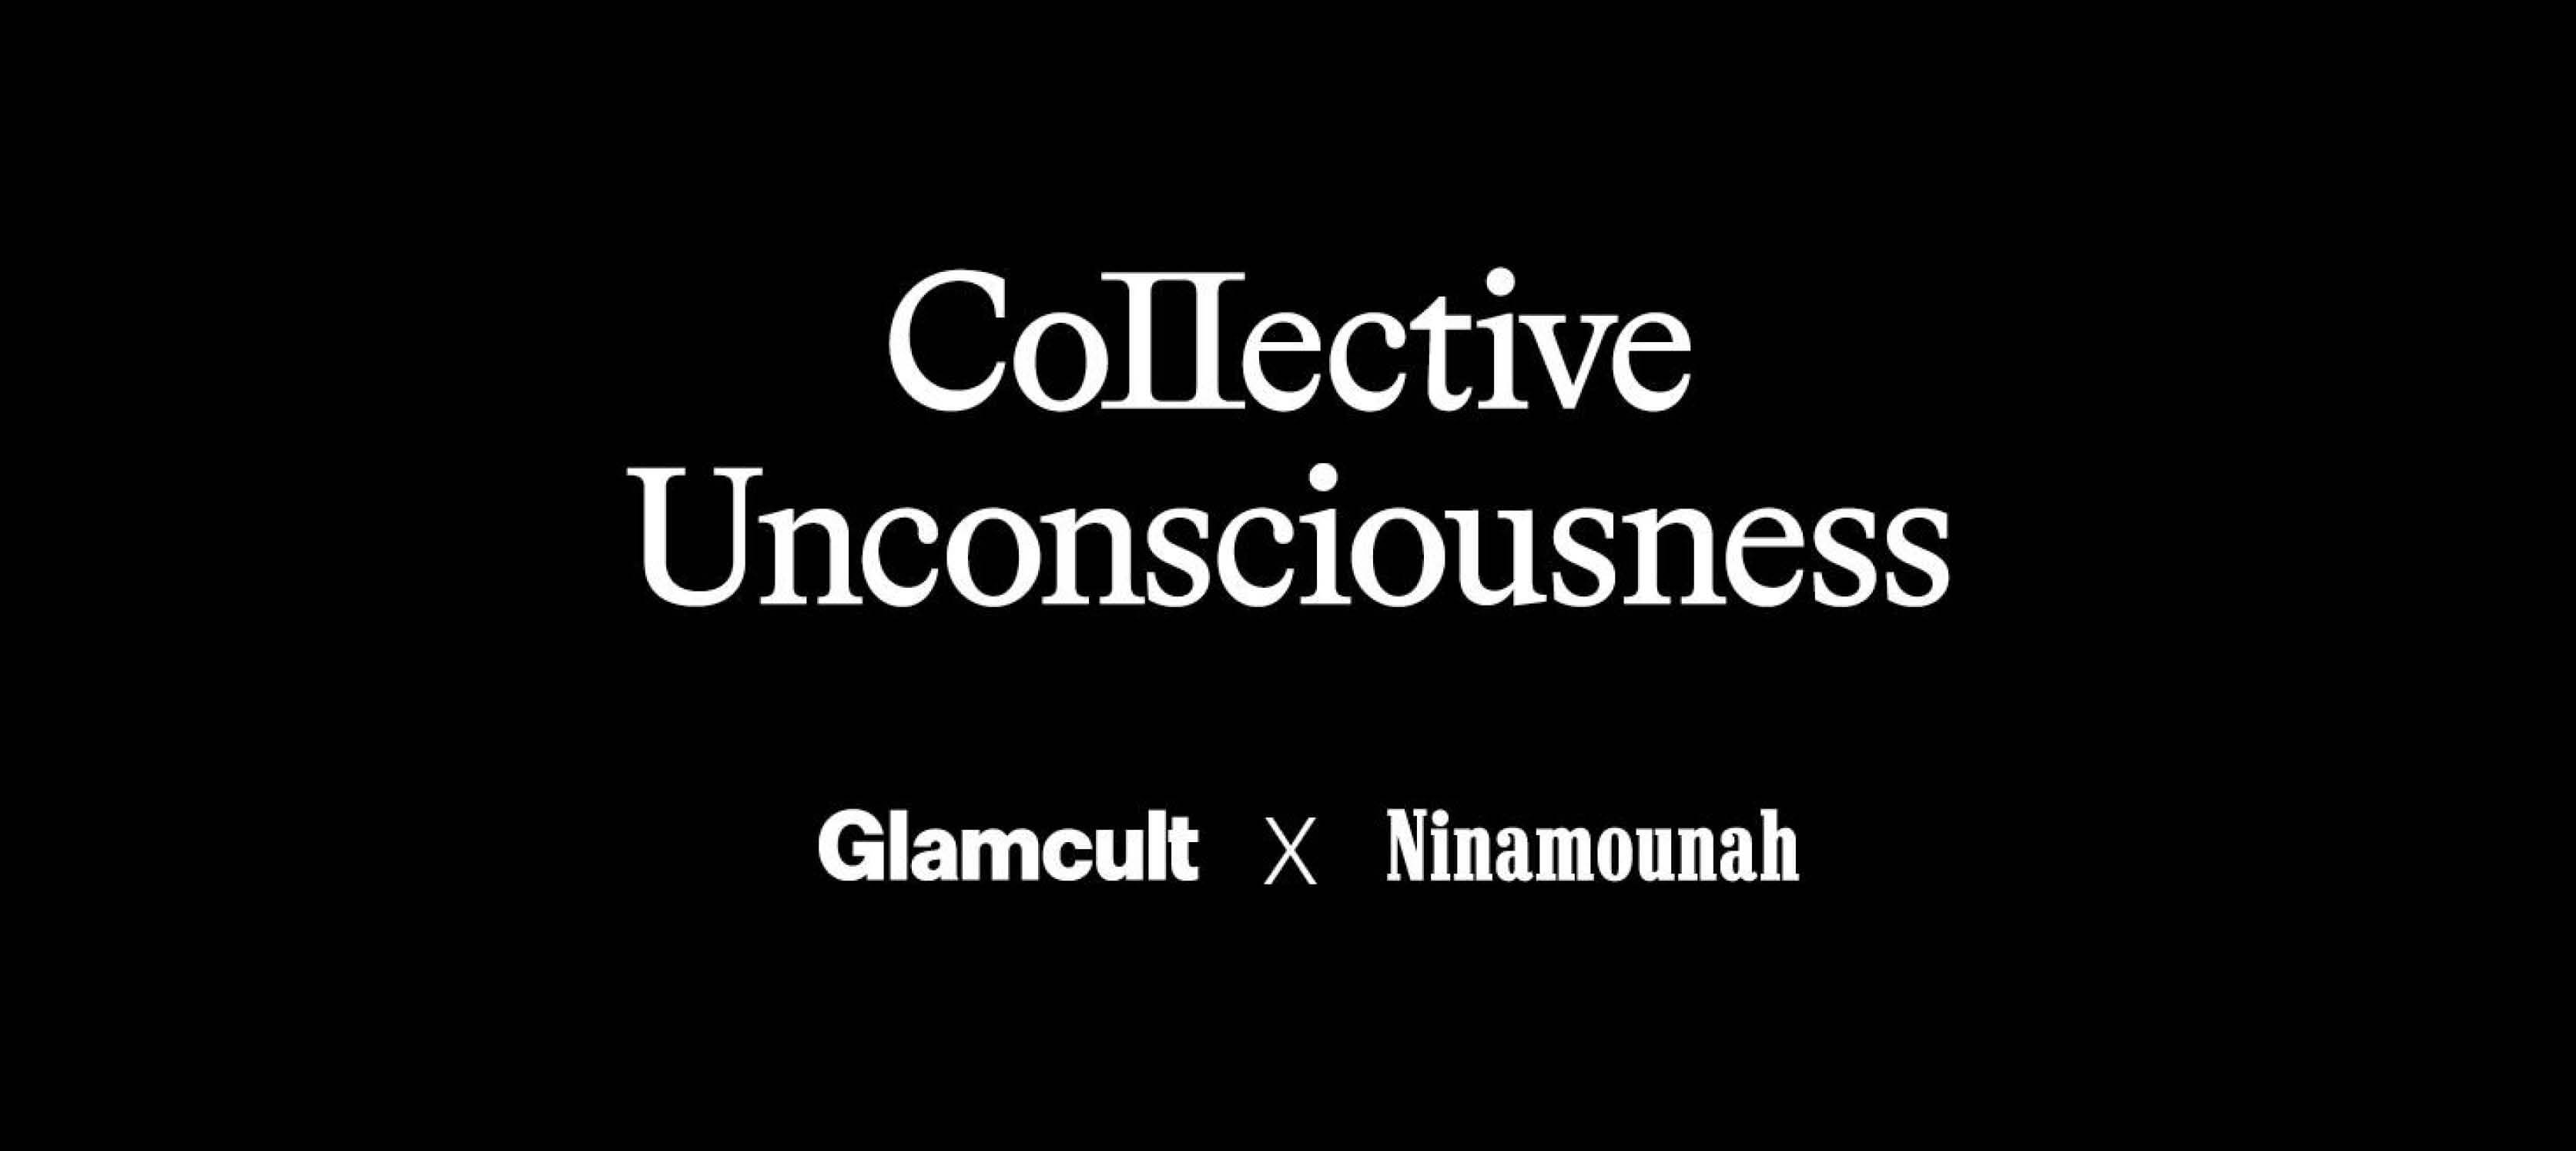 Glamcult x Ninamounah: Collective Unconsciousness